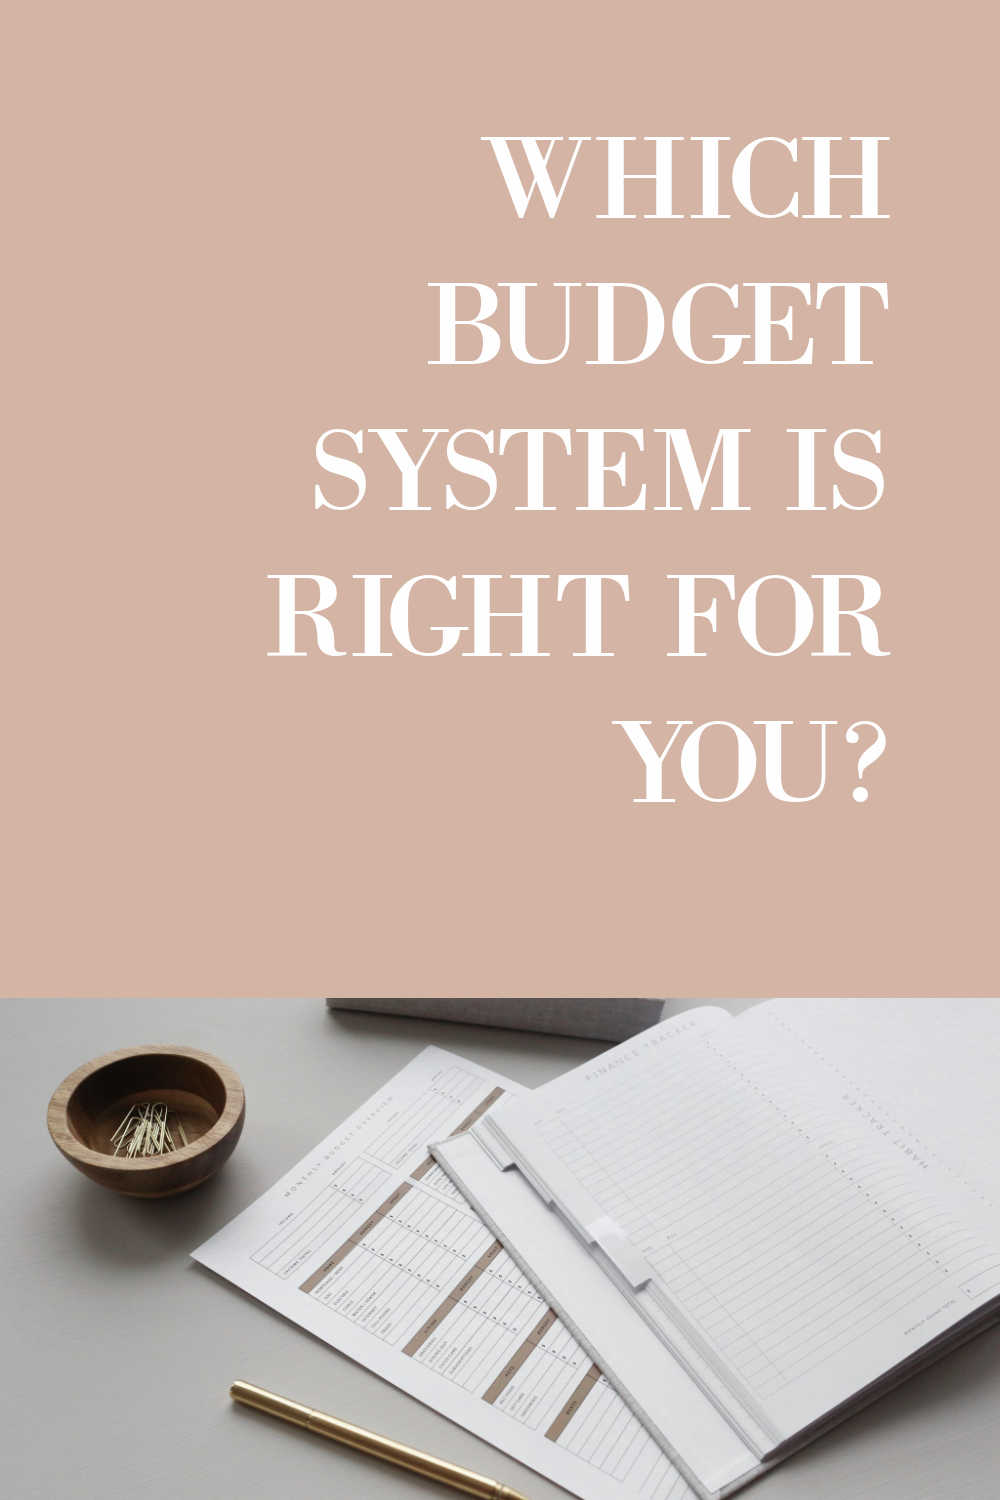 BUDGET SYSTEM IS RIGHT FOR YOU